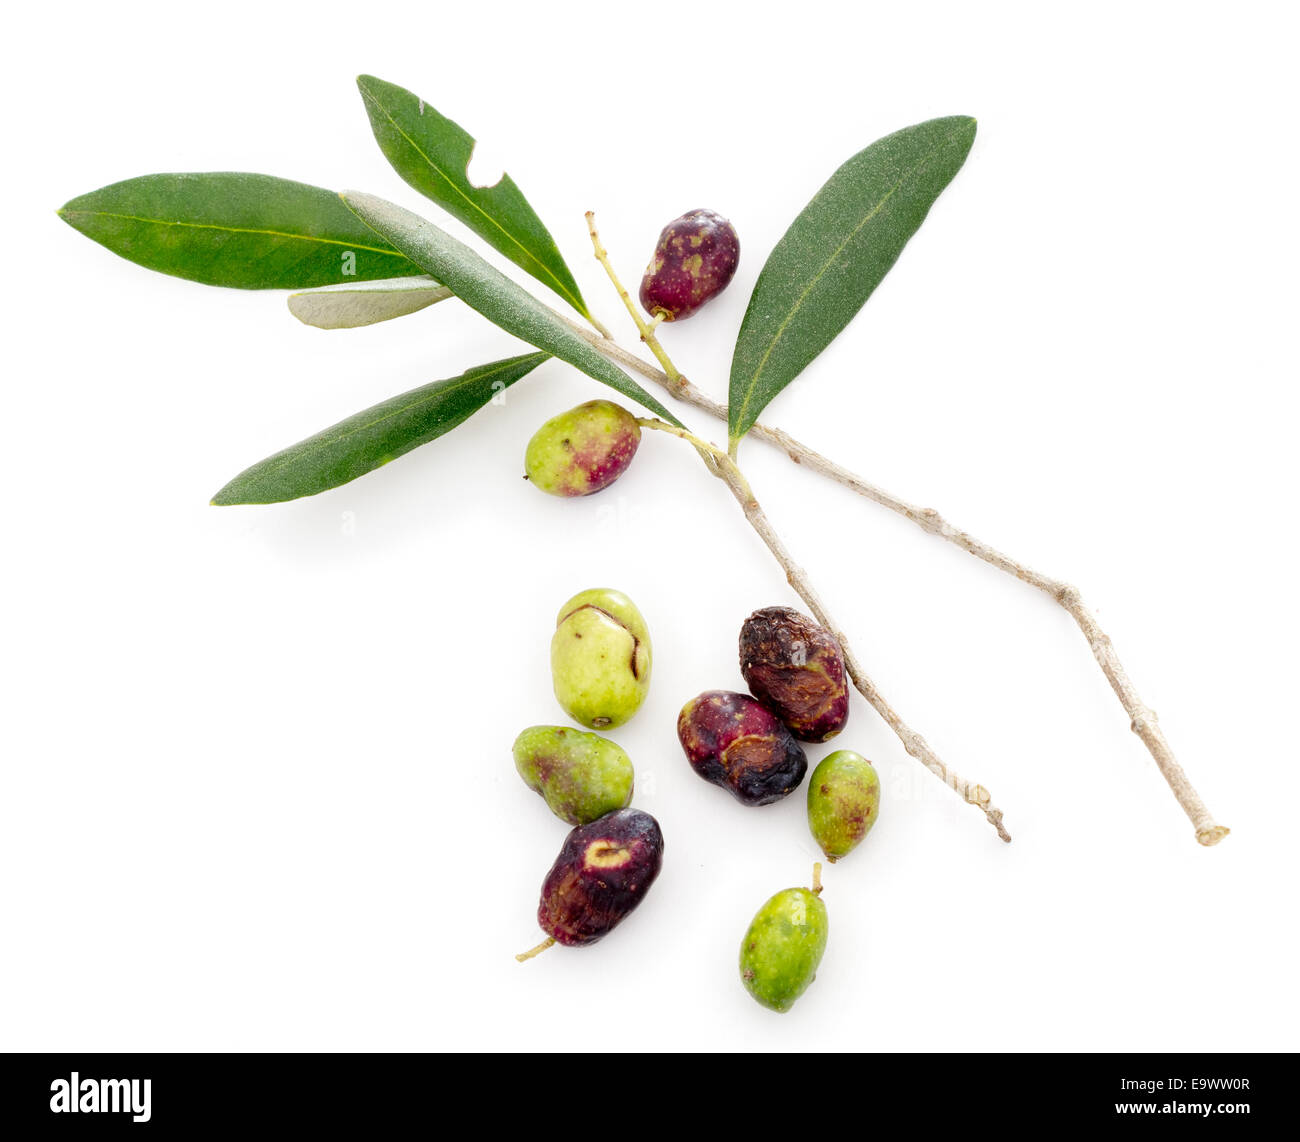 Ill olives. Harvest and production well down this year. Price of olive oil likely to go up. 2014. - Stock Image